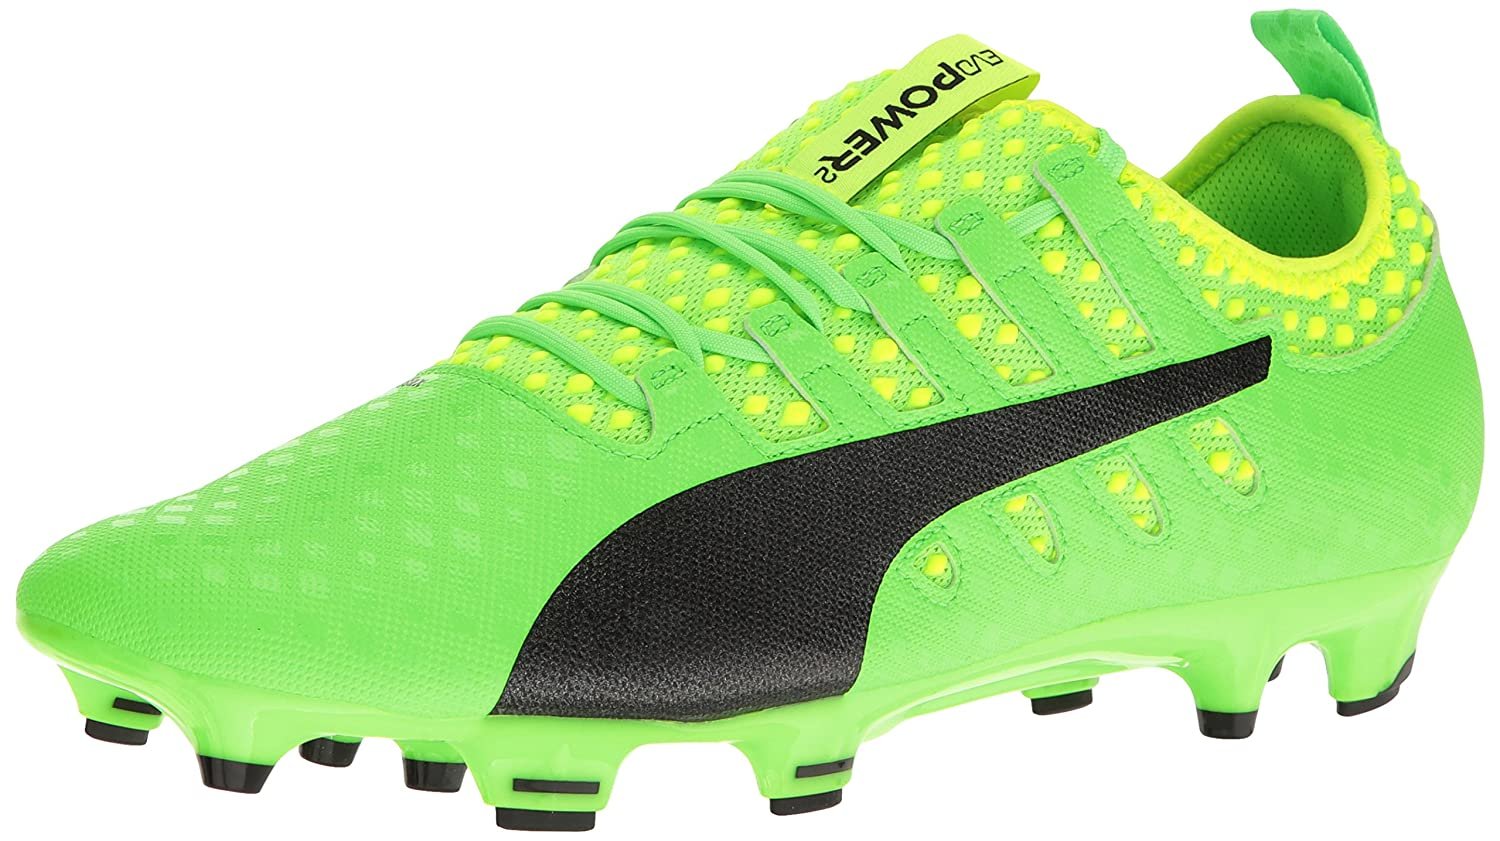 PUMA Men's Evopower Vigor 2 FG Soccer Schuhe, Grün Gecko schwarz-Safety Yellow, 9.5 M US